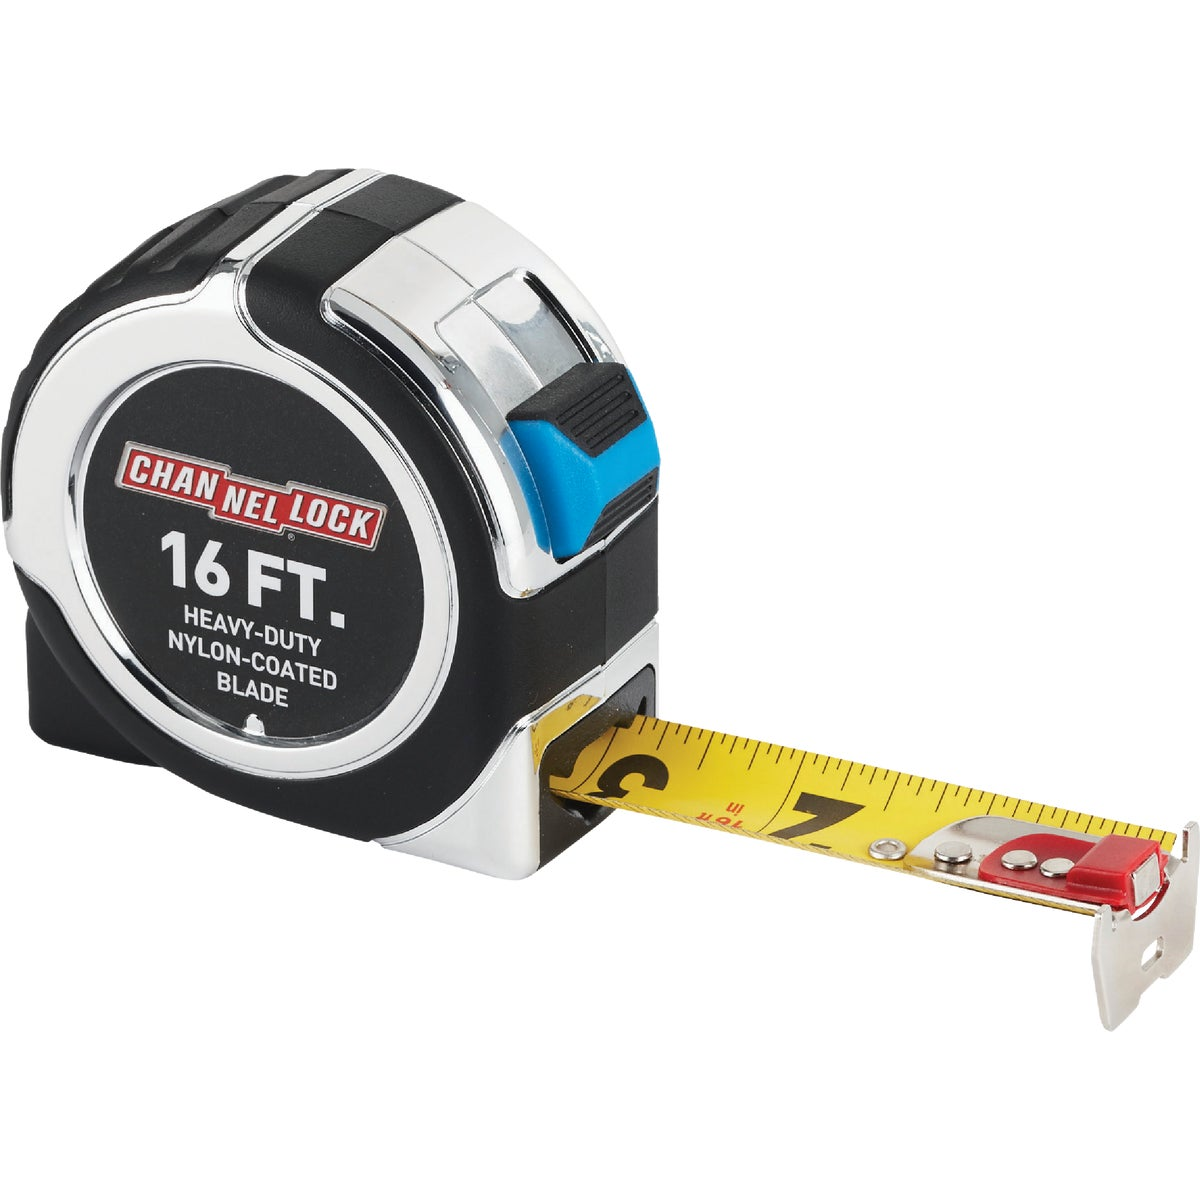 16' PRO TAPE MEASURE - CL71416 by Channellock Products